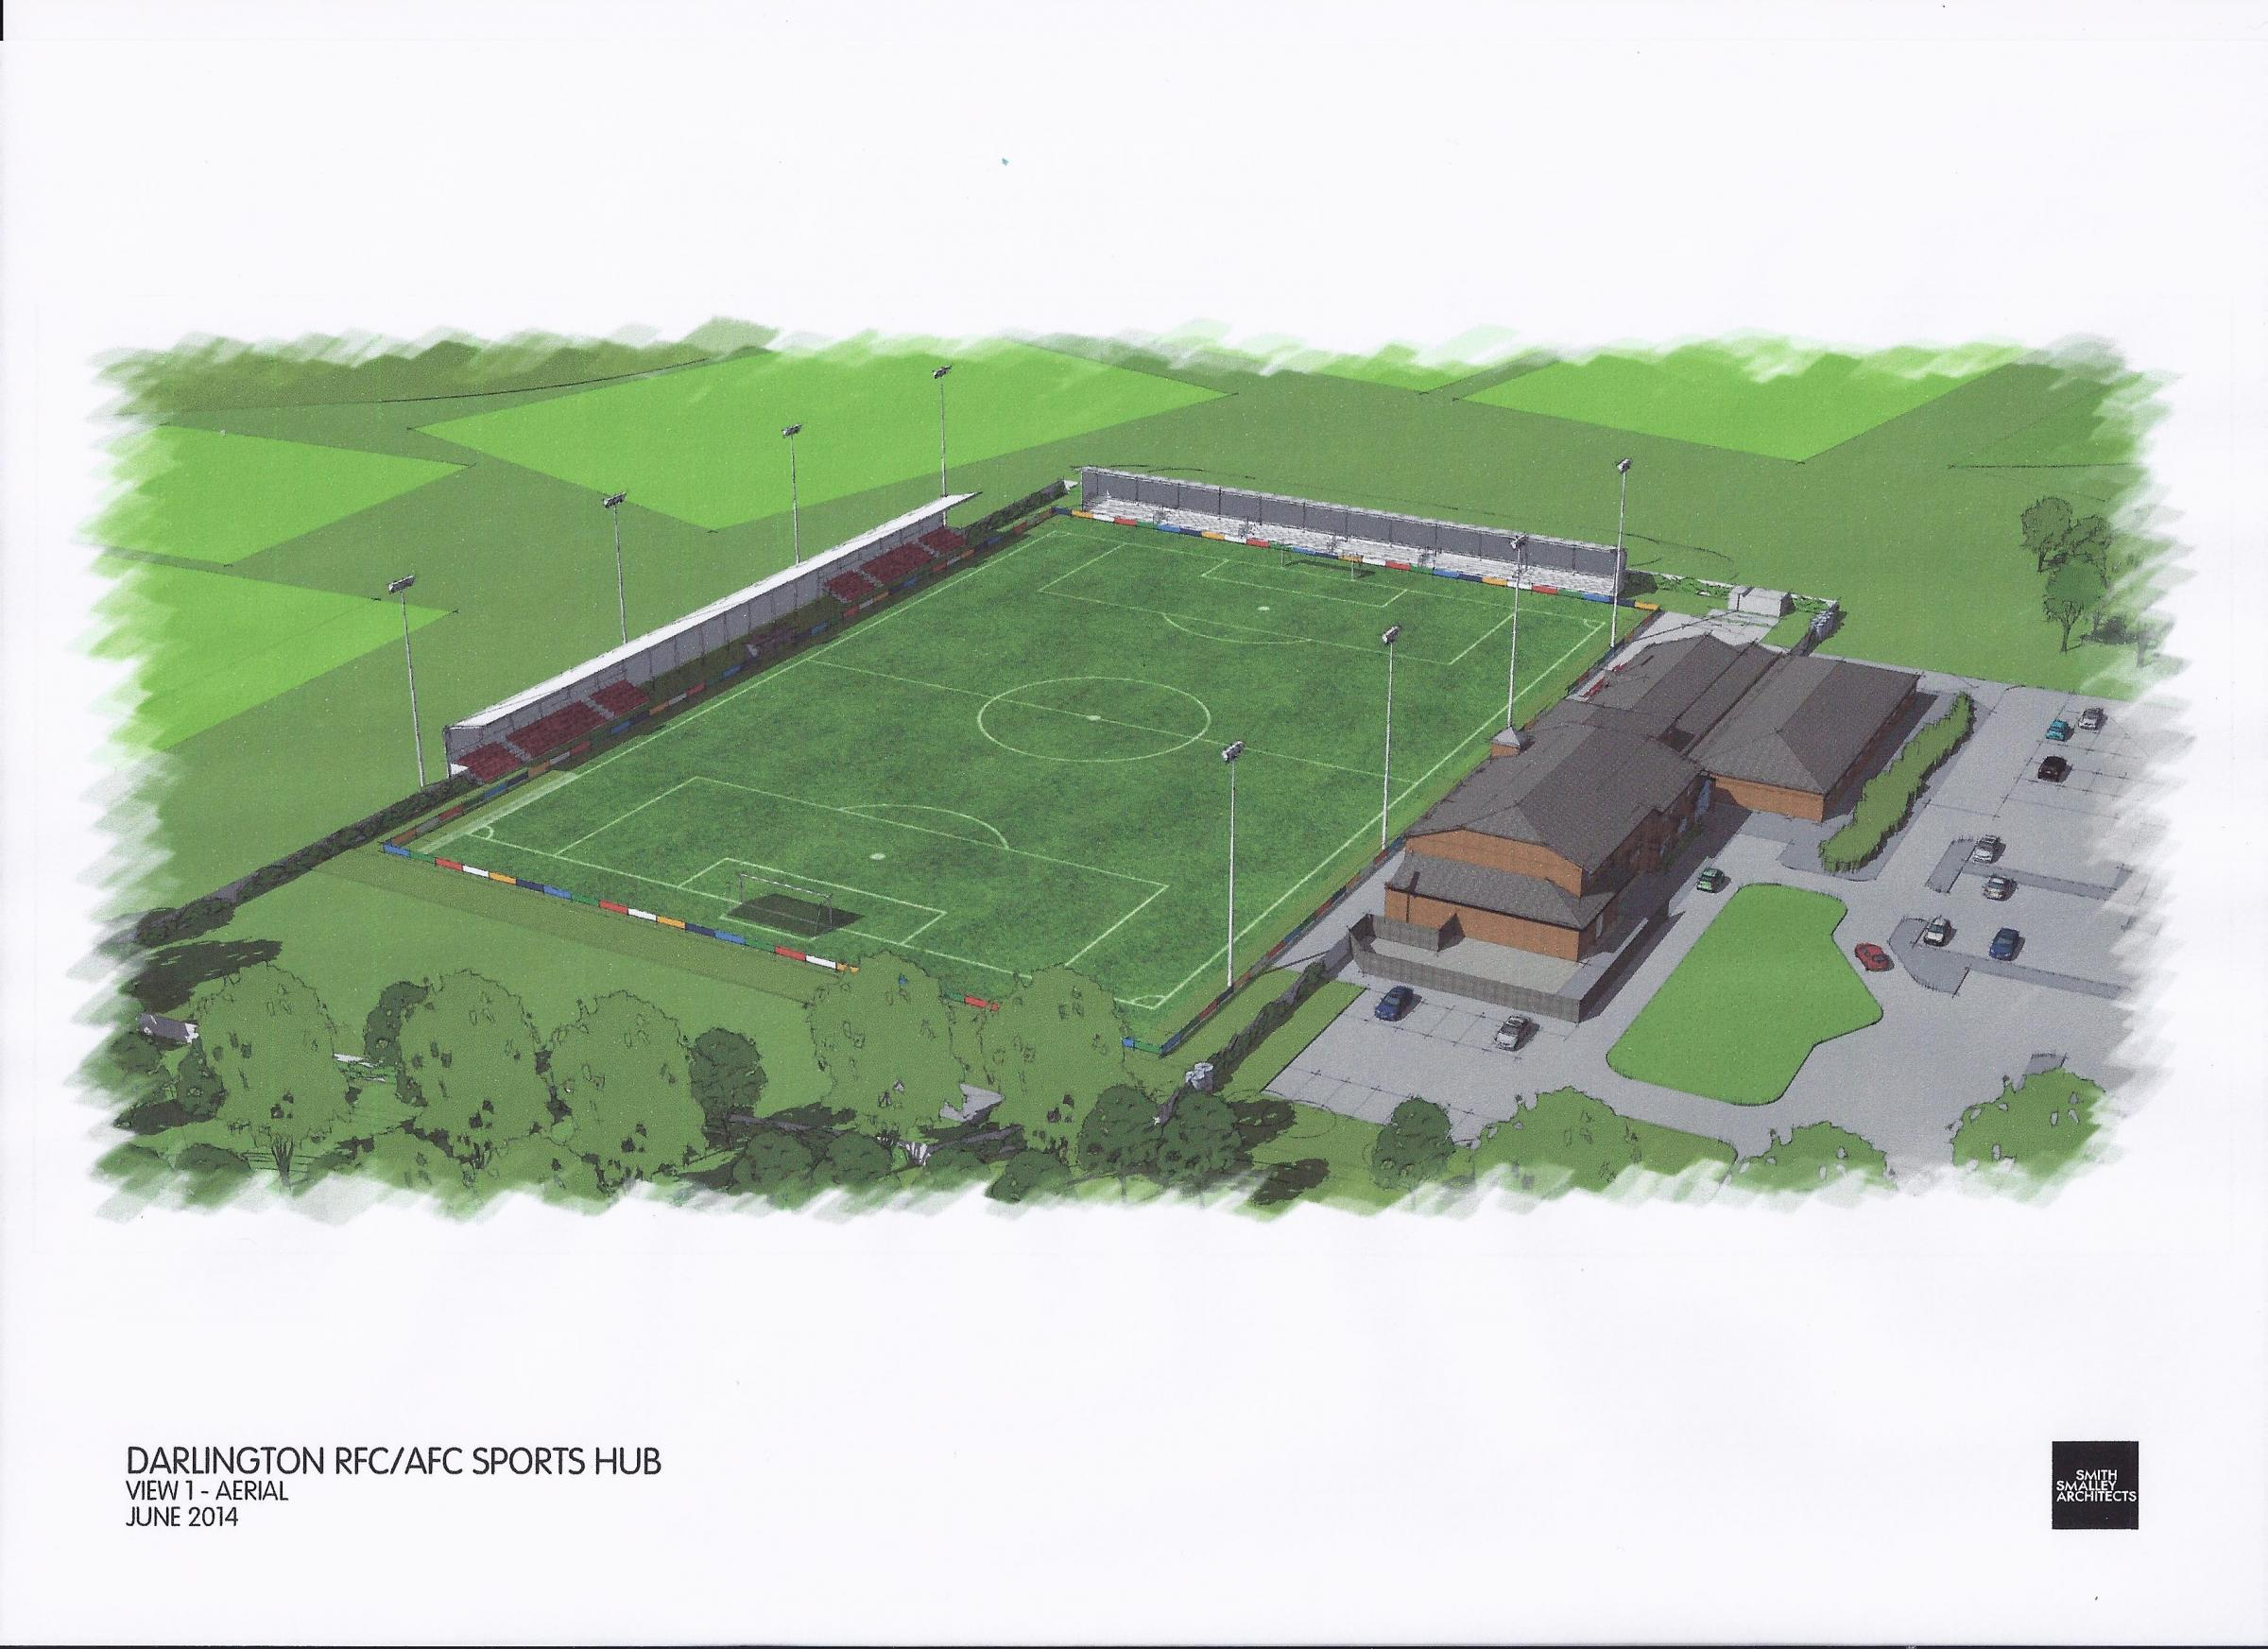 Darlington RFC and Darlington FC groundshare designs revealed